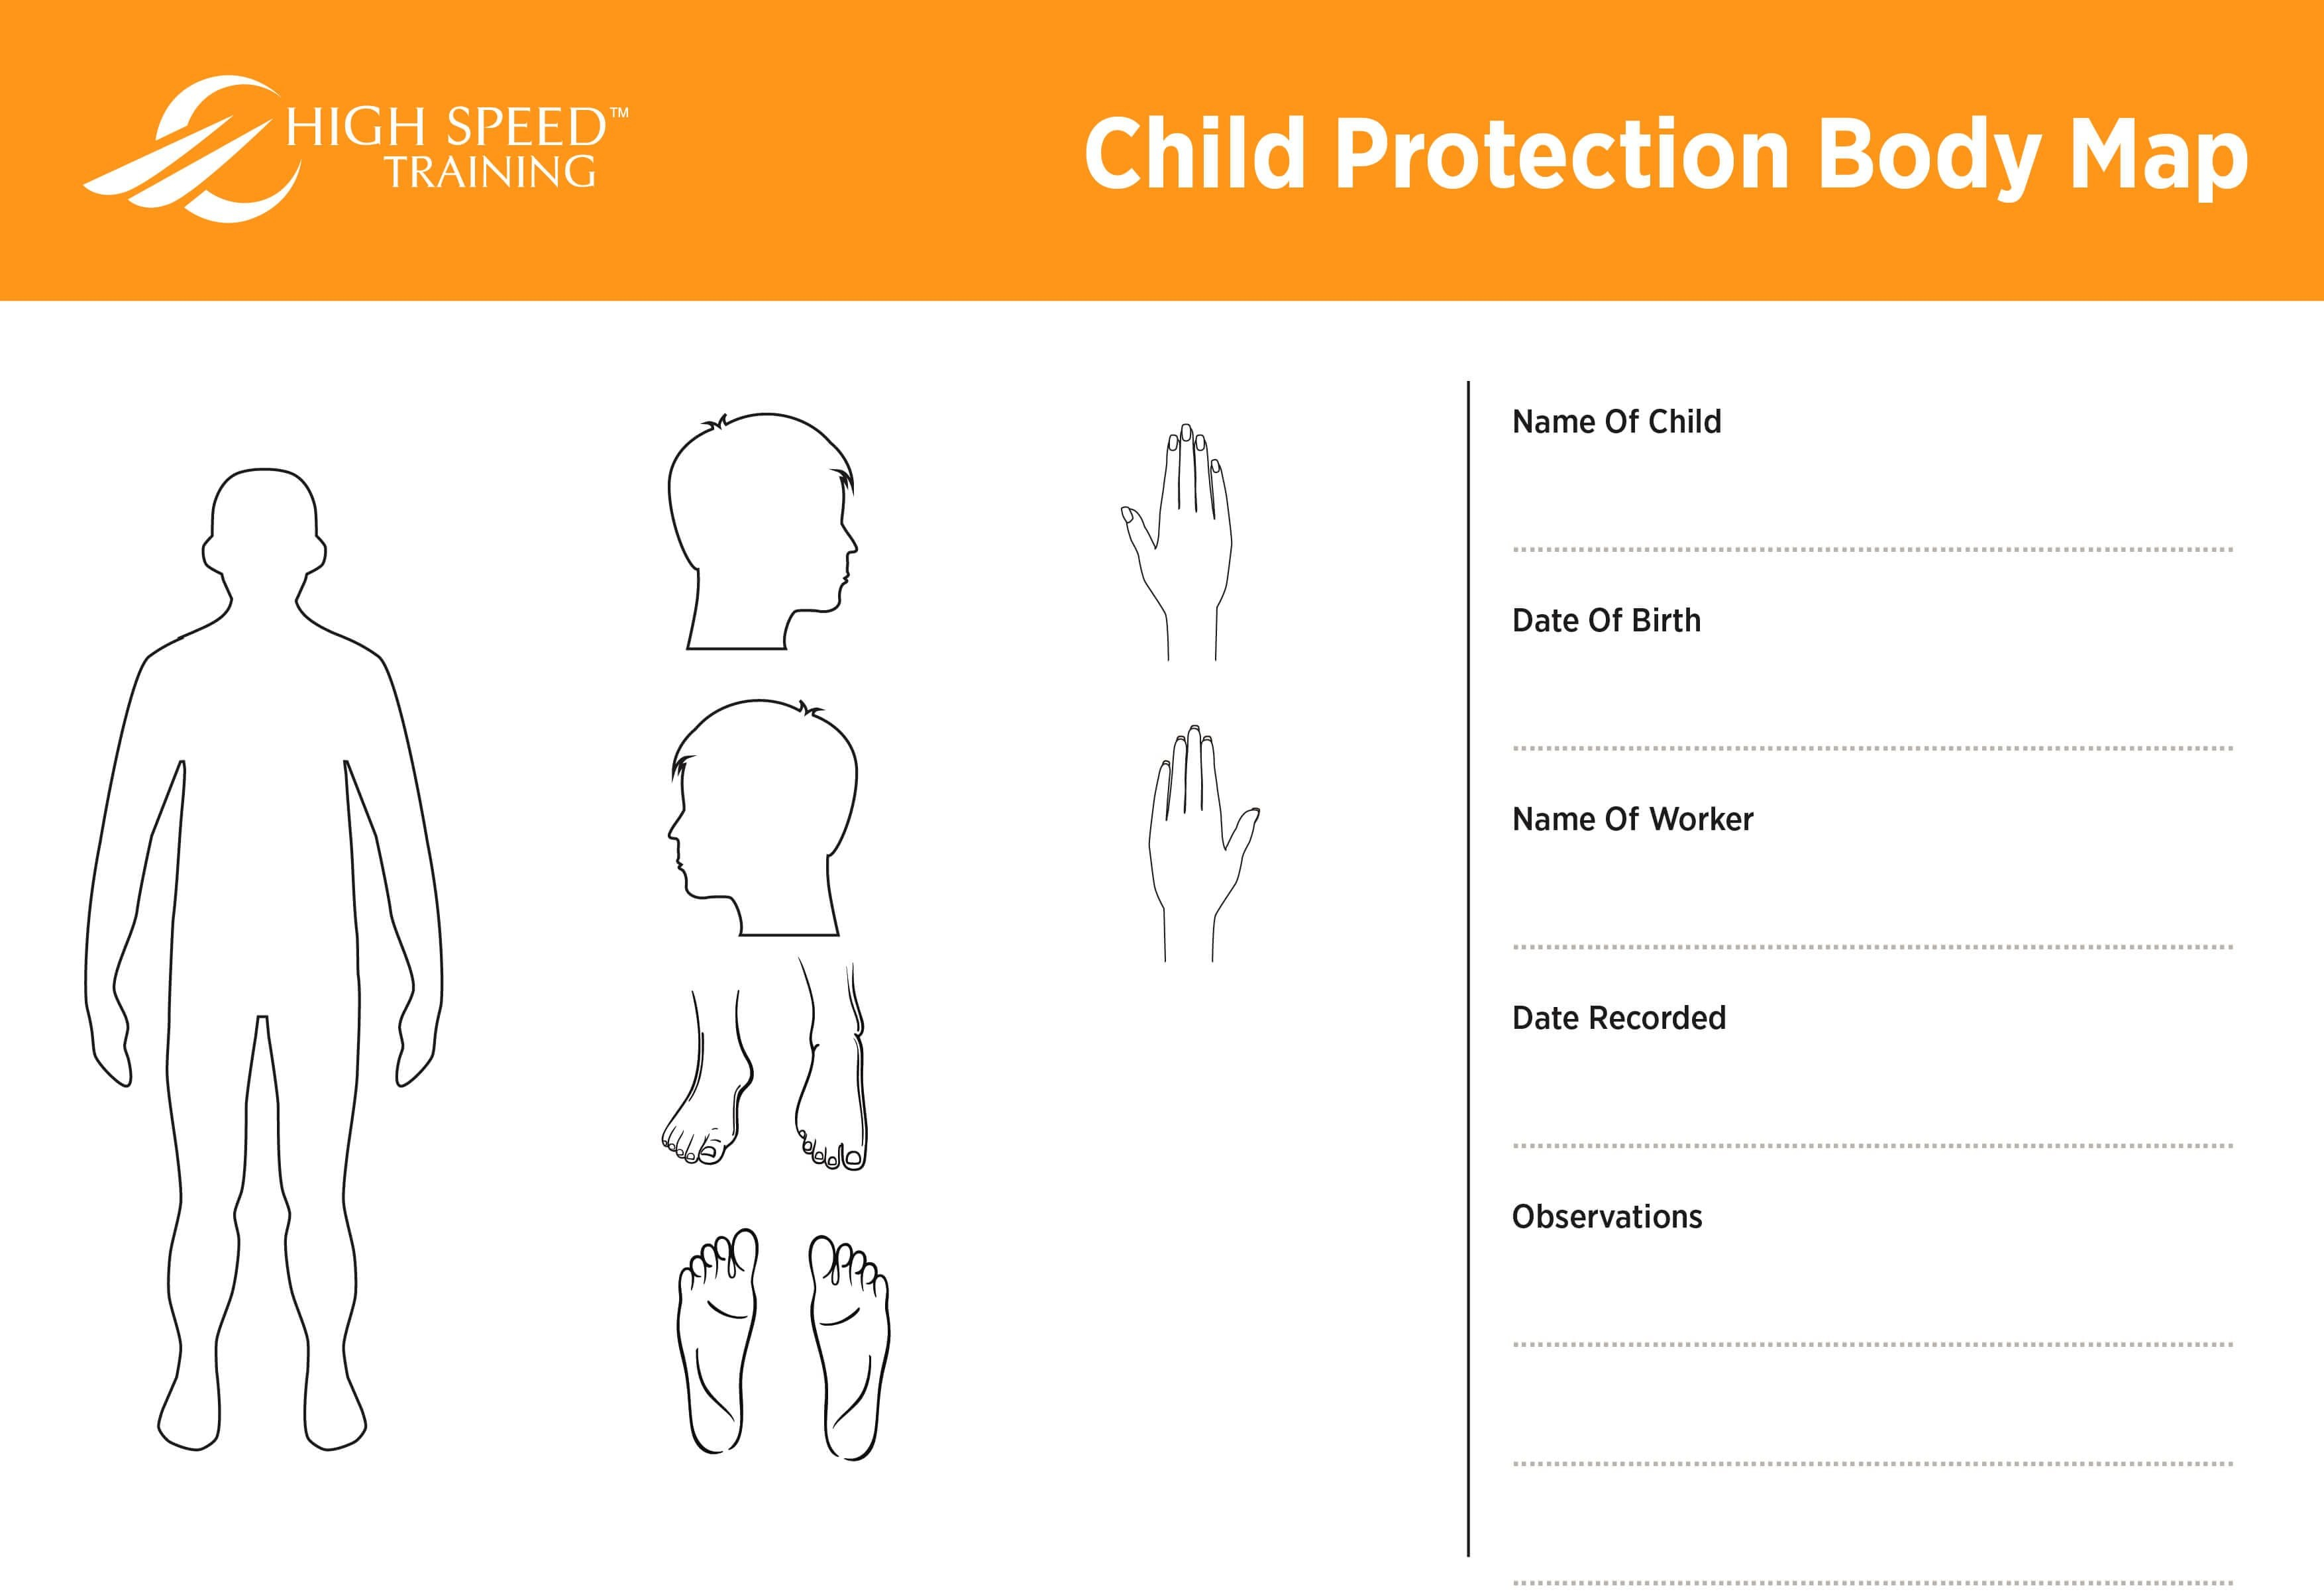 Child Protection Body Map Template  Safeguarding Advice With Blank Body Map Template